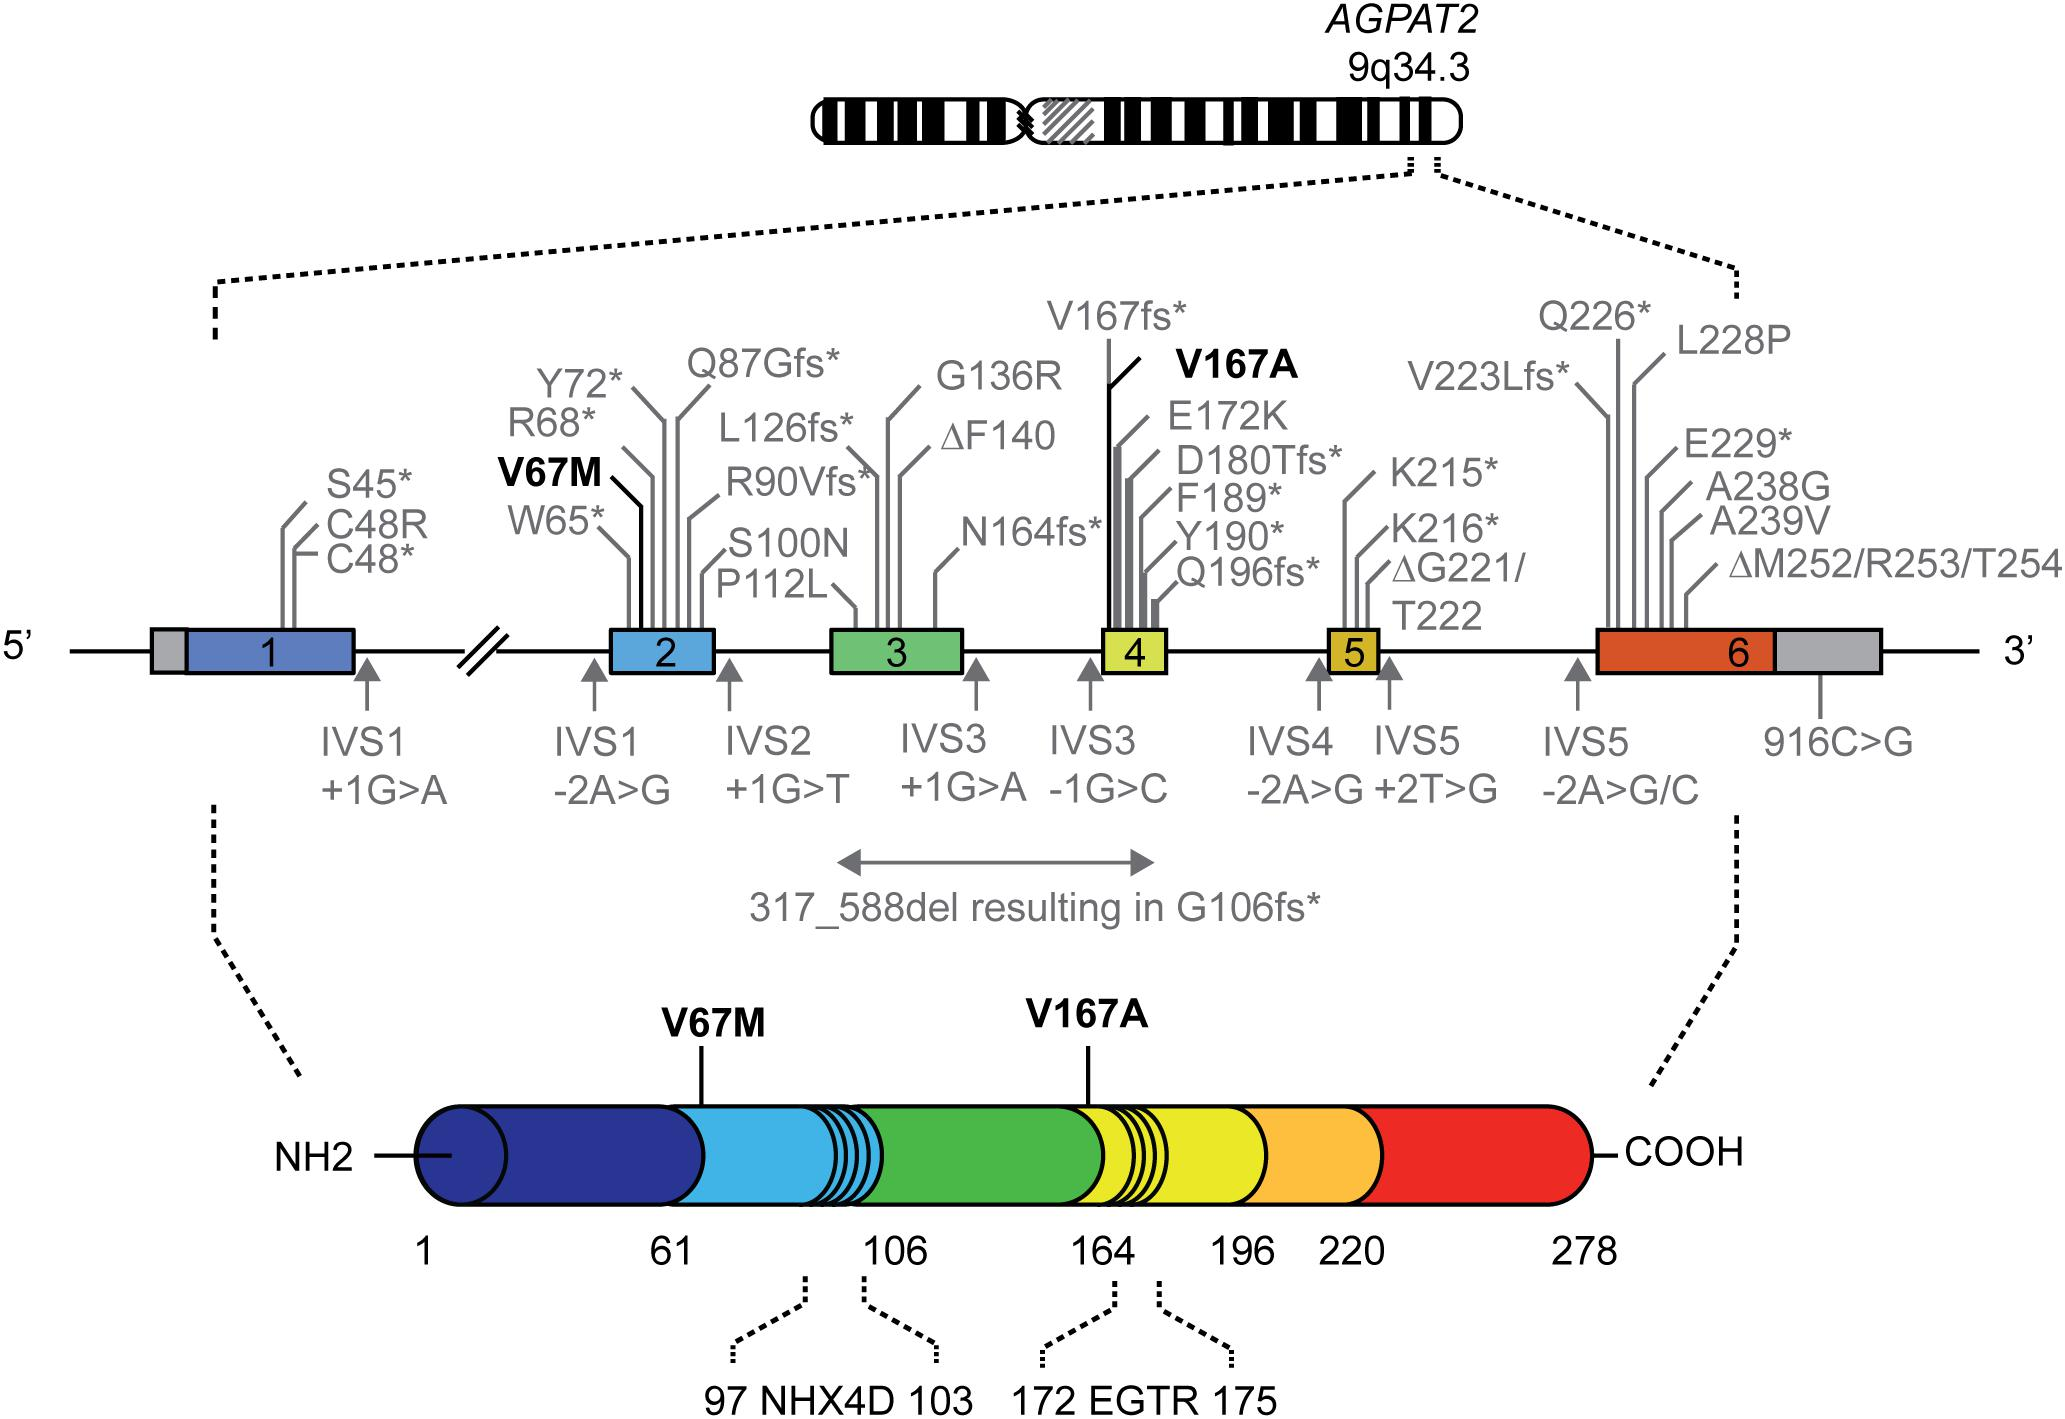 Frontiers A Single Complex Agpat2 Allele In Patient With Partial Moonshine Diagram Related Keywords Suggestions